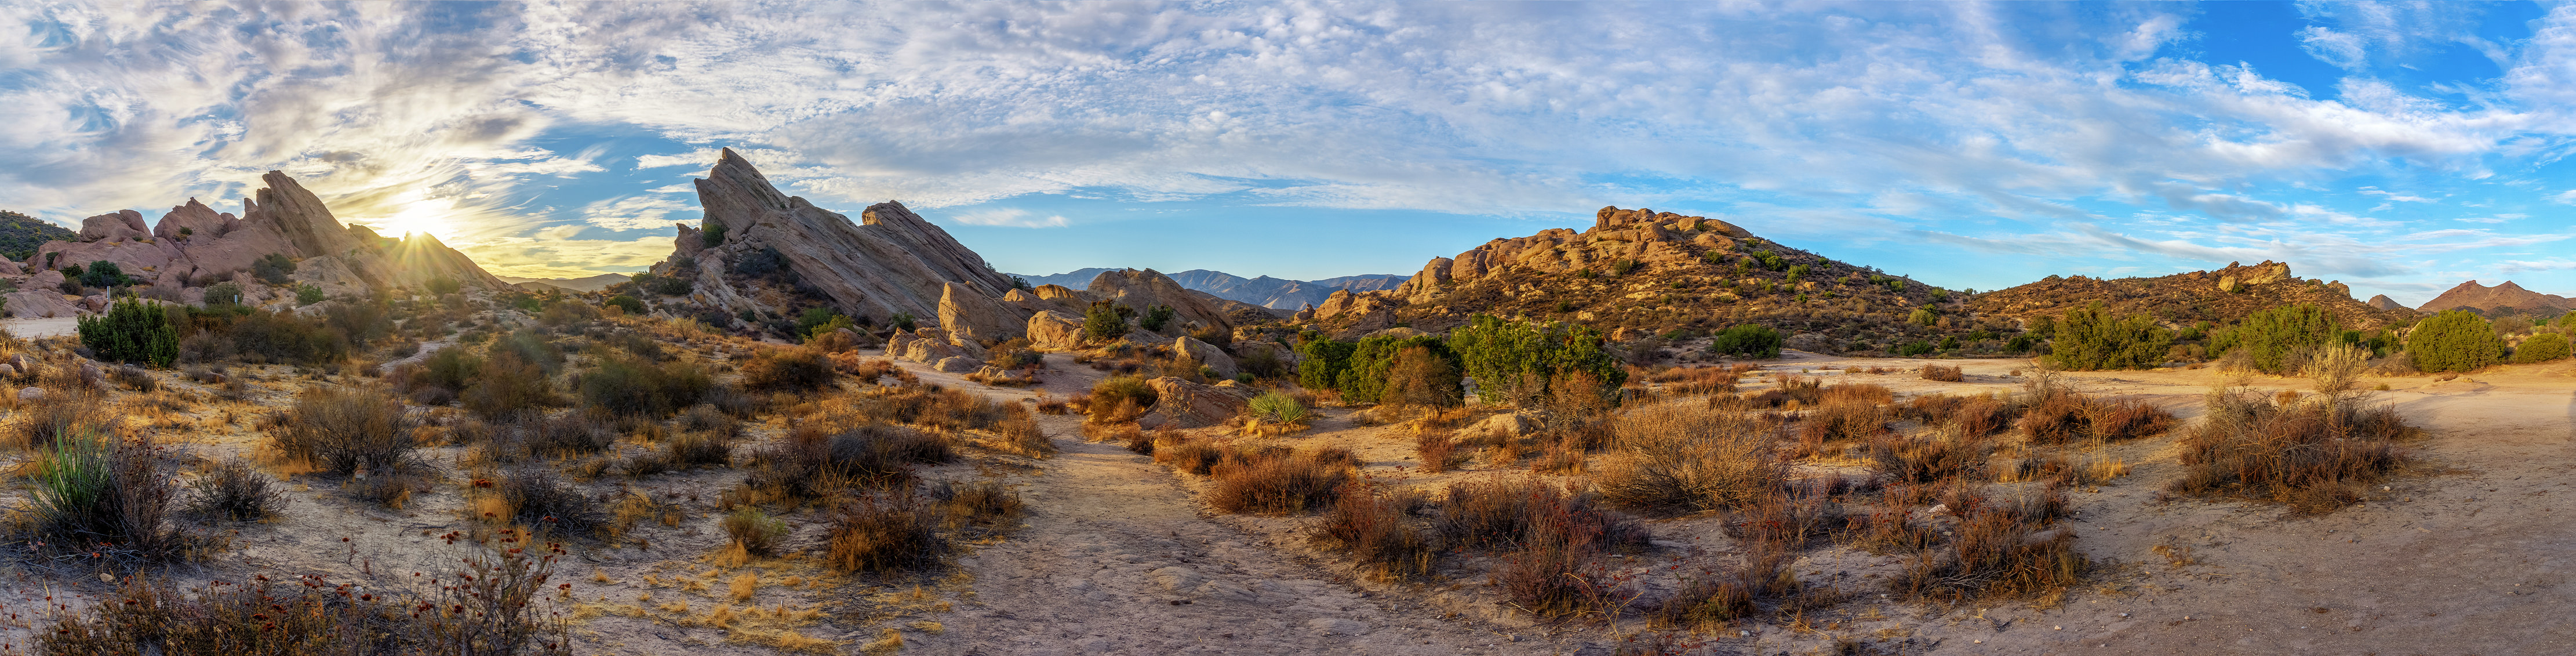 Vasquez Rocks Natural Area Panorama